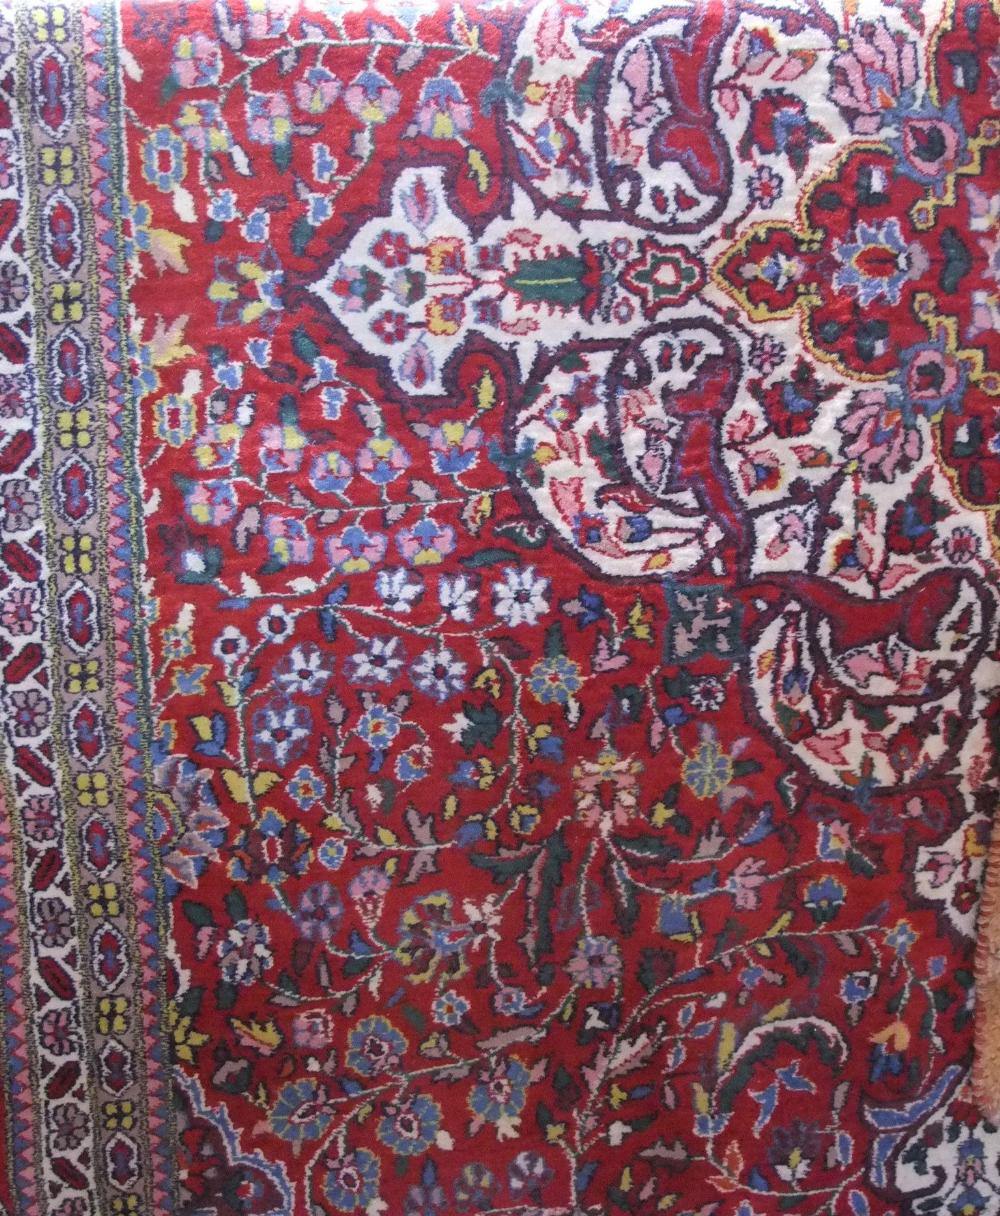 Lot 616 - Good quality Persian carpet with intricate scrolled floral decoration upon a rich red ground, 330